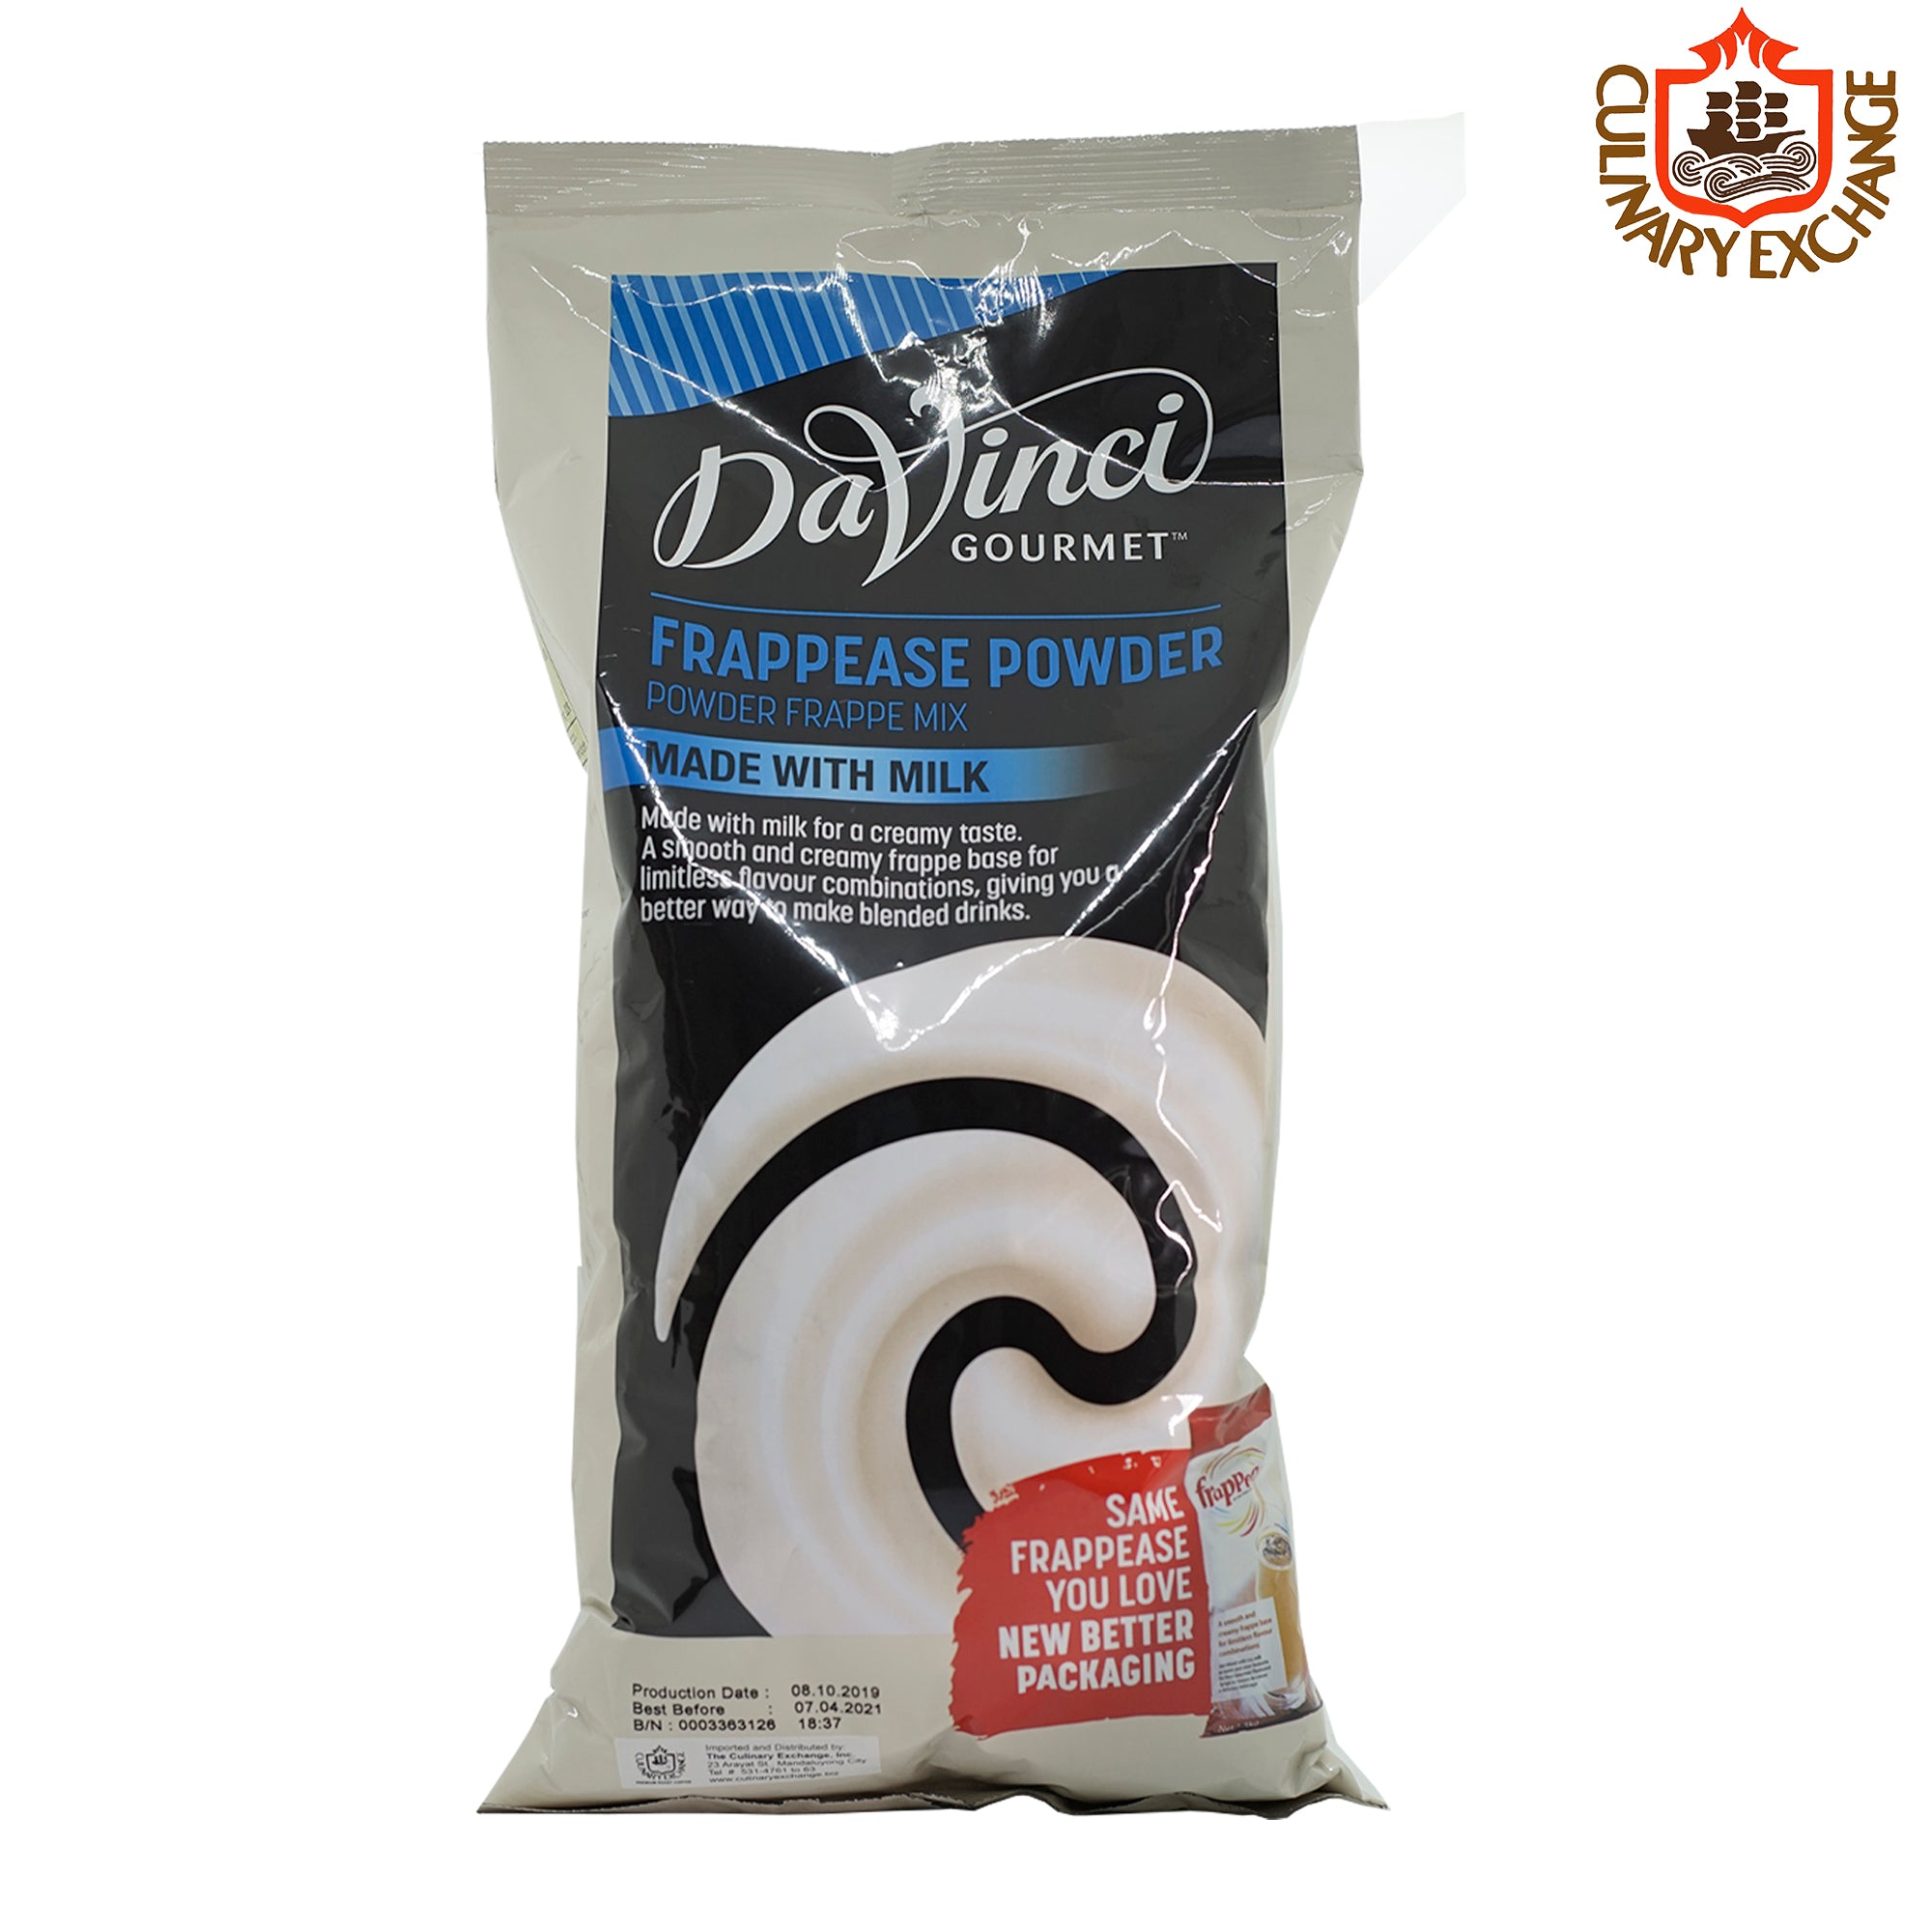 DaVinci Gourmet Neutral Frappease Beverage Base Mix (1.5kg)